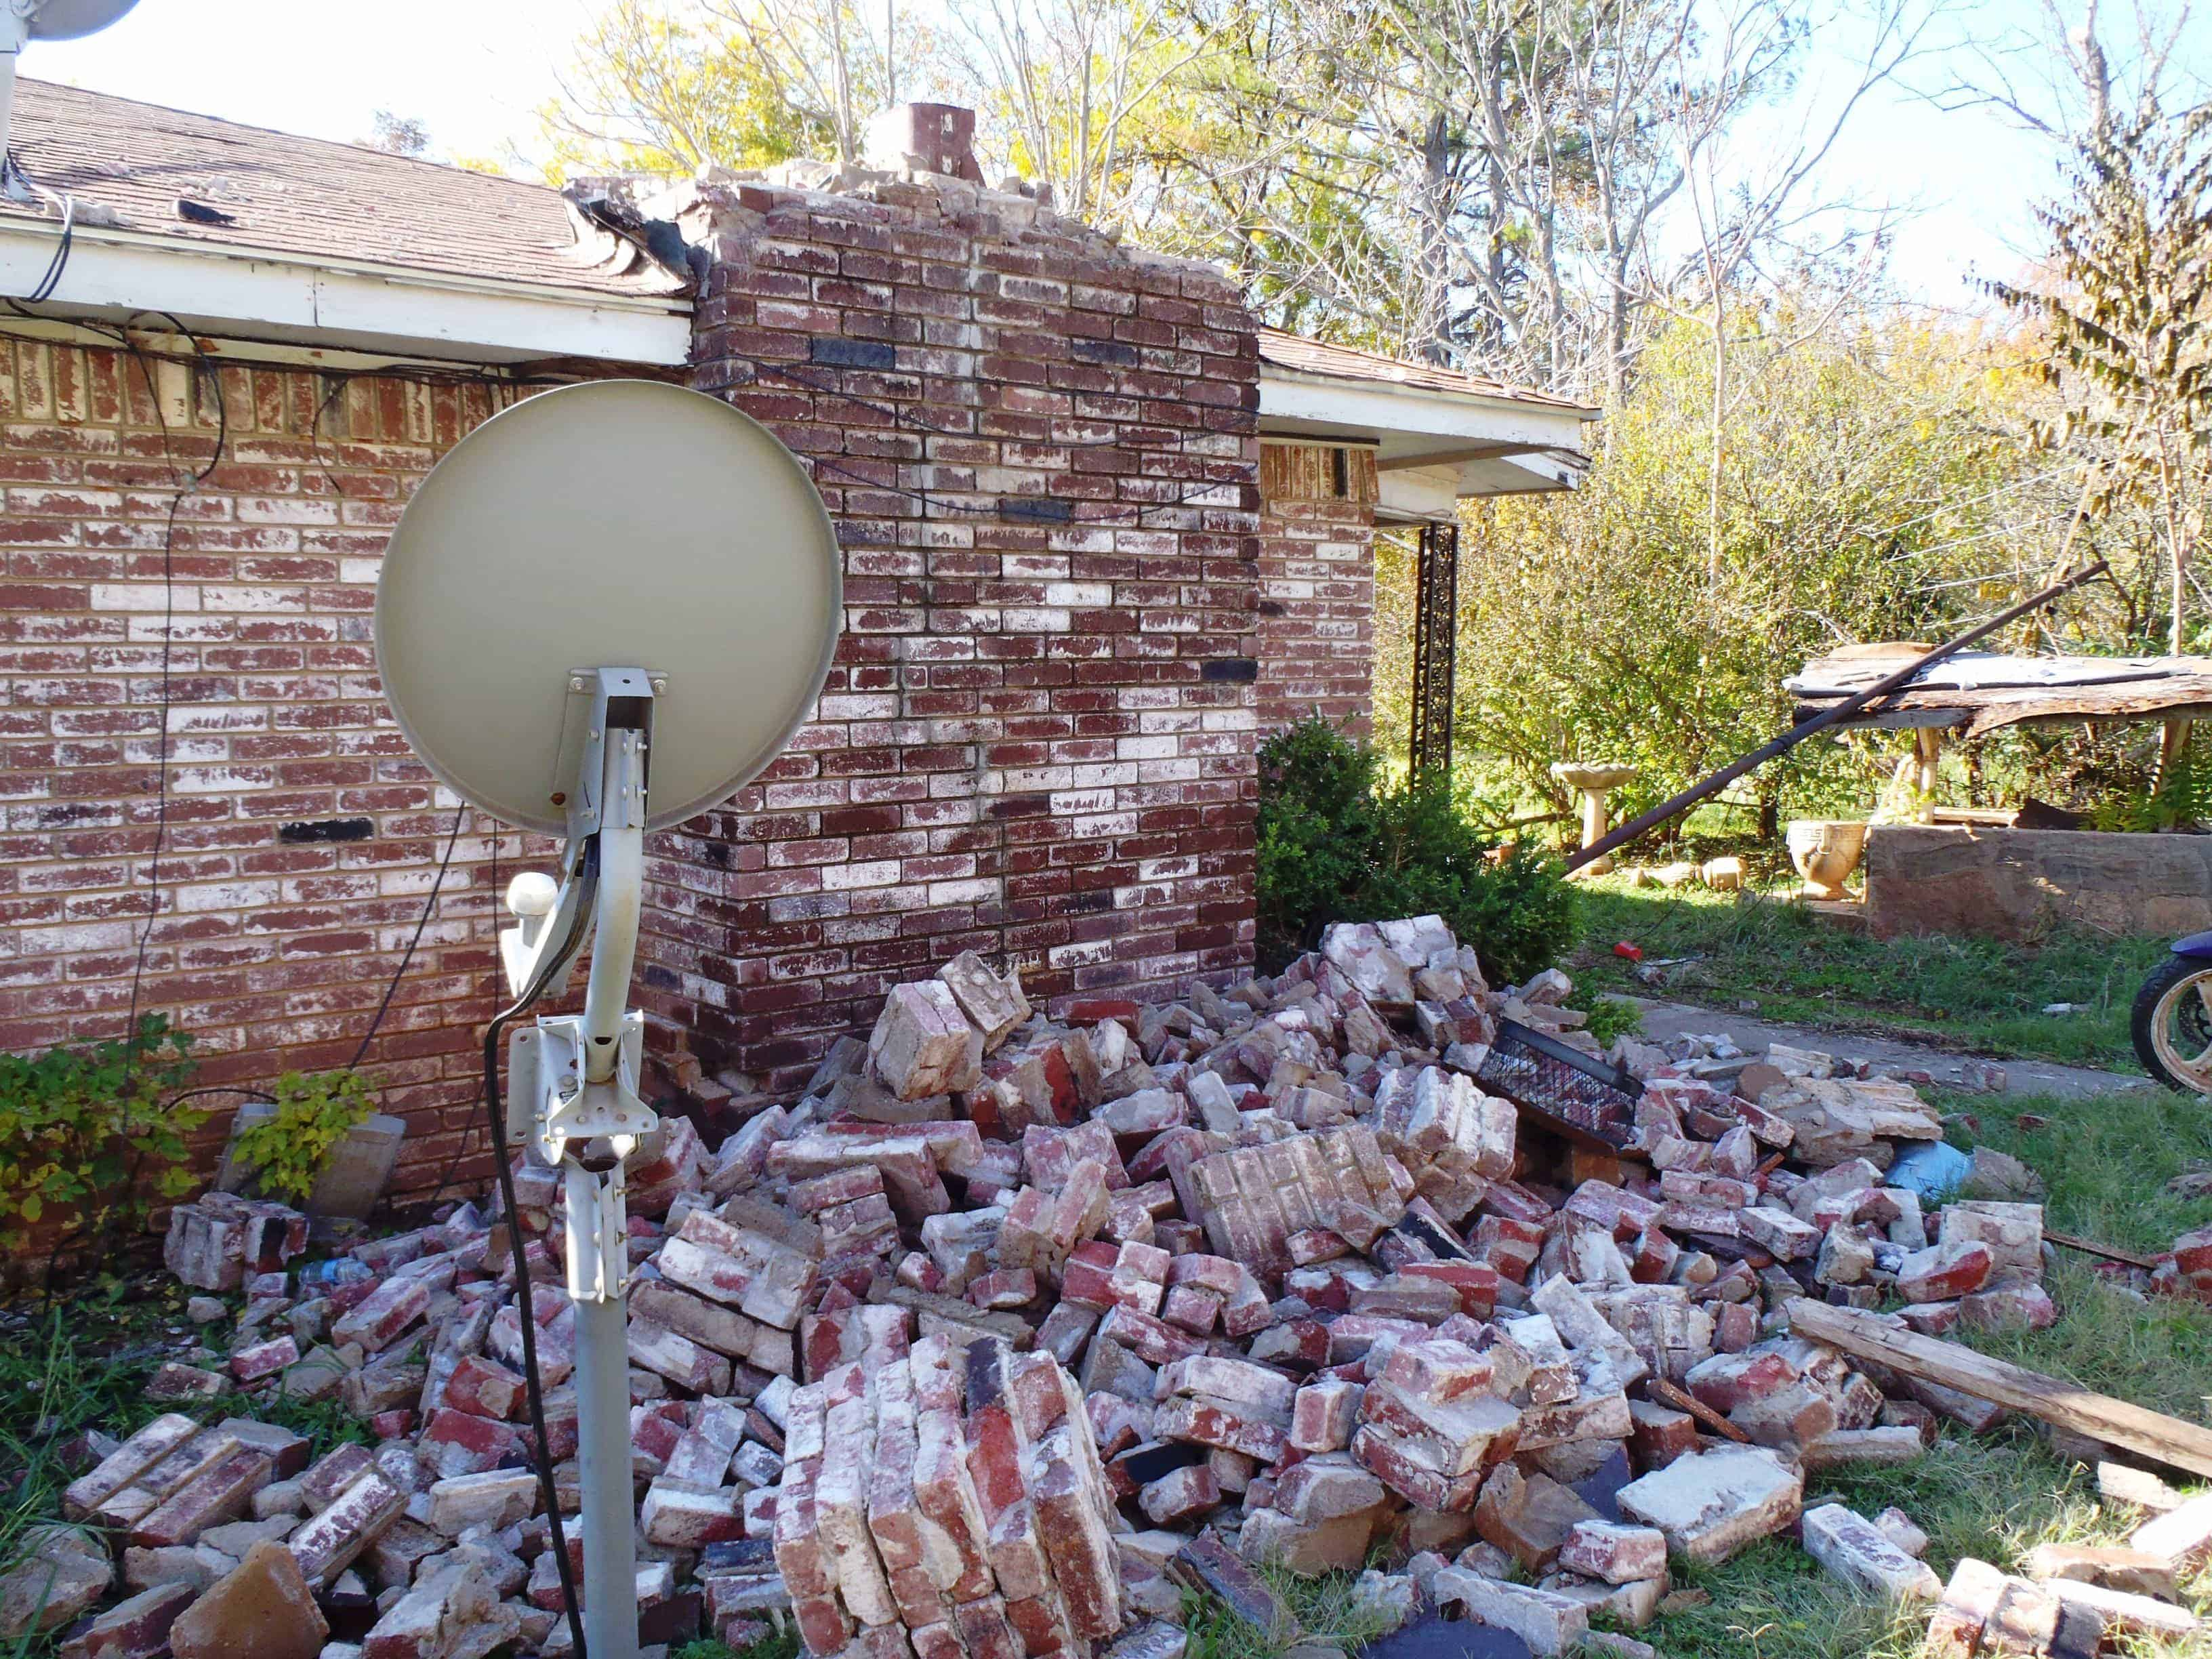 U.S. Geological Survey scientists linked the earthquake that damaged this Oklahoma home in 2011 to hydraulic fracking activities. Private lawsuits were filed against energy companies after two larger quakes in December and January. (Brian Sherrod, United States Geological Survey )